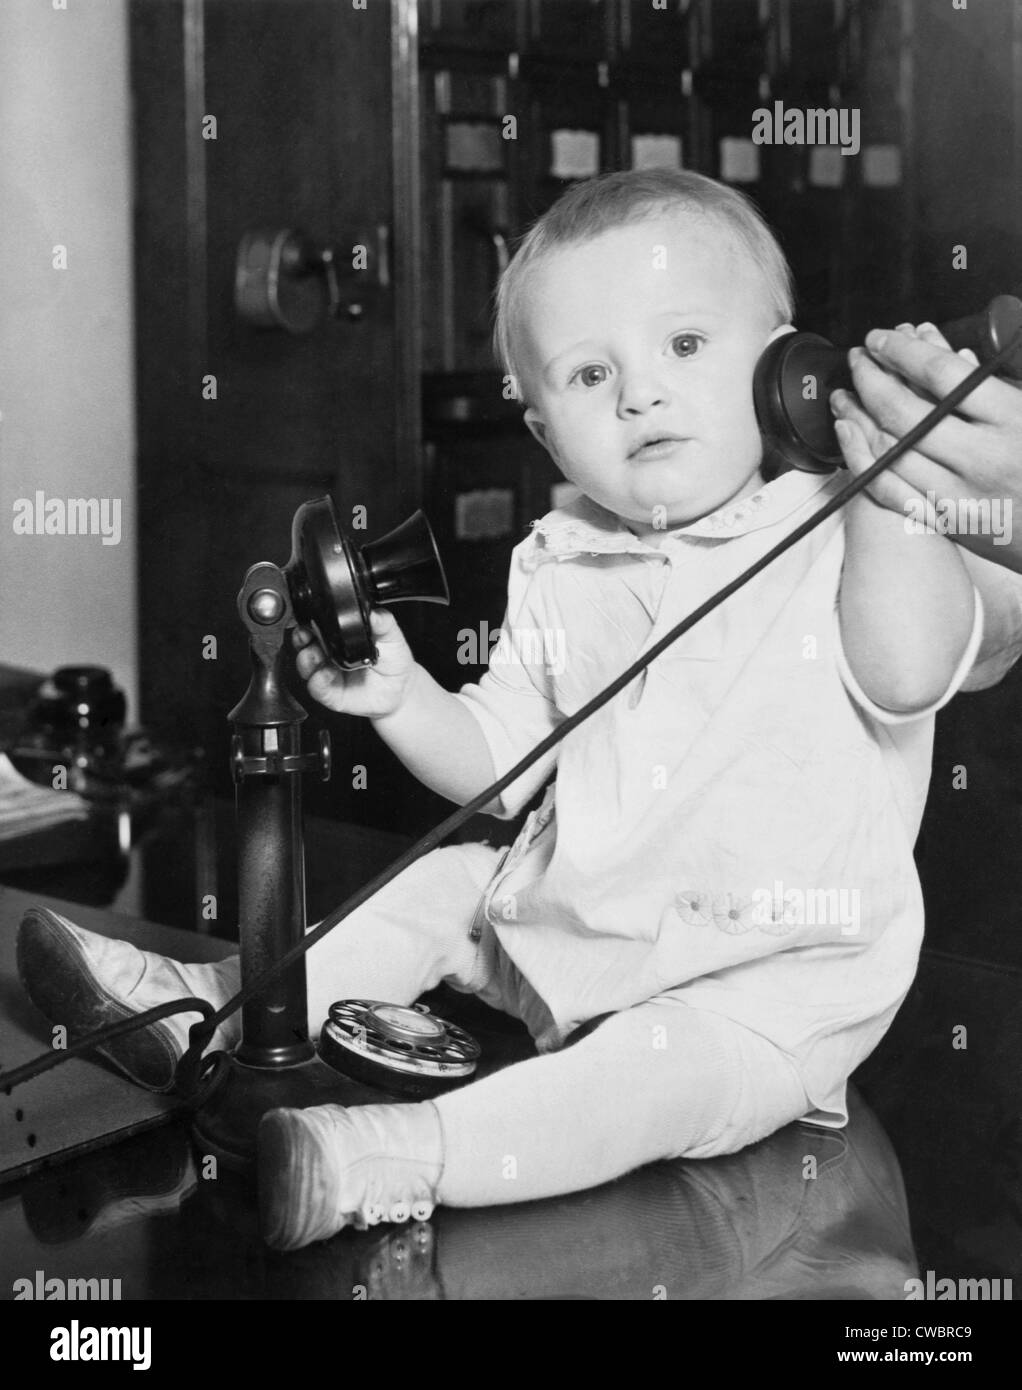 A baby found under a bed at the Stevens Hotel, Chicago, Illinois was photographed with a telephone to illustrate - Stock Image